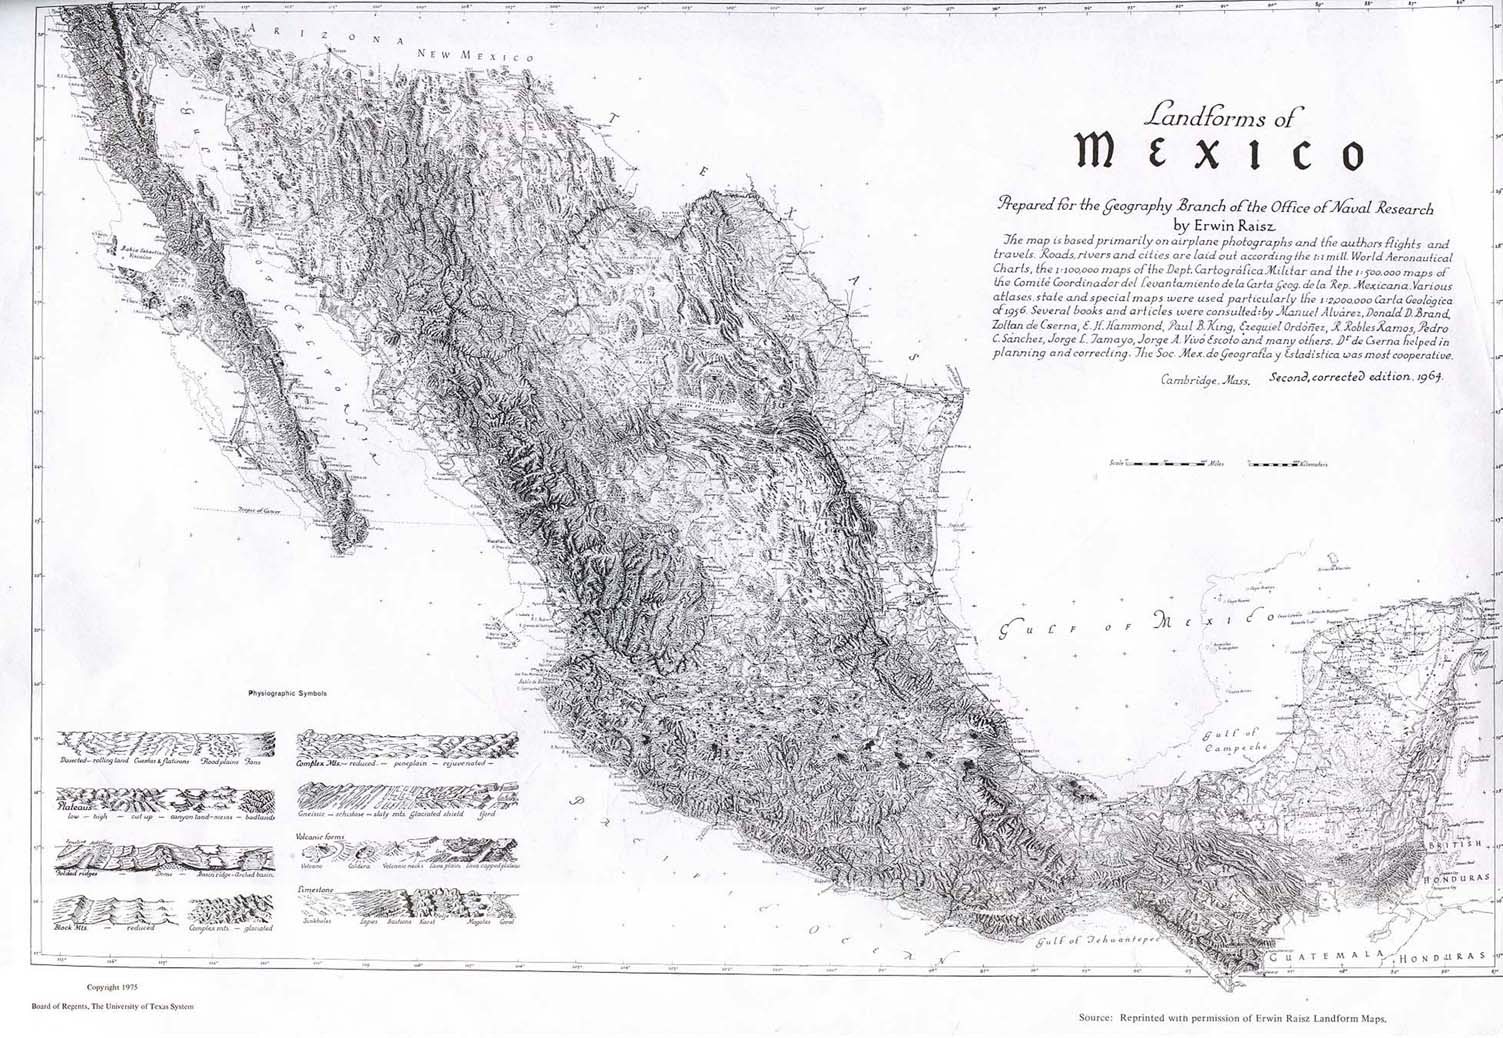 Landforms Map, Mexico